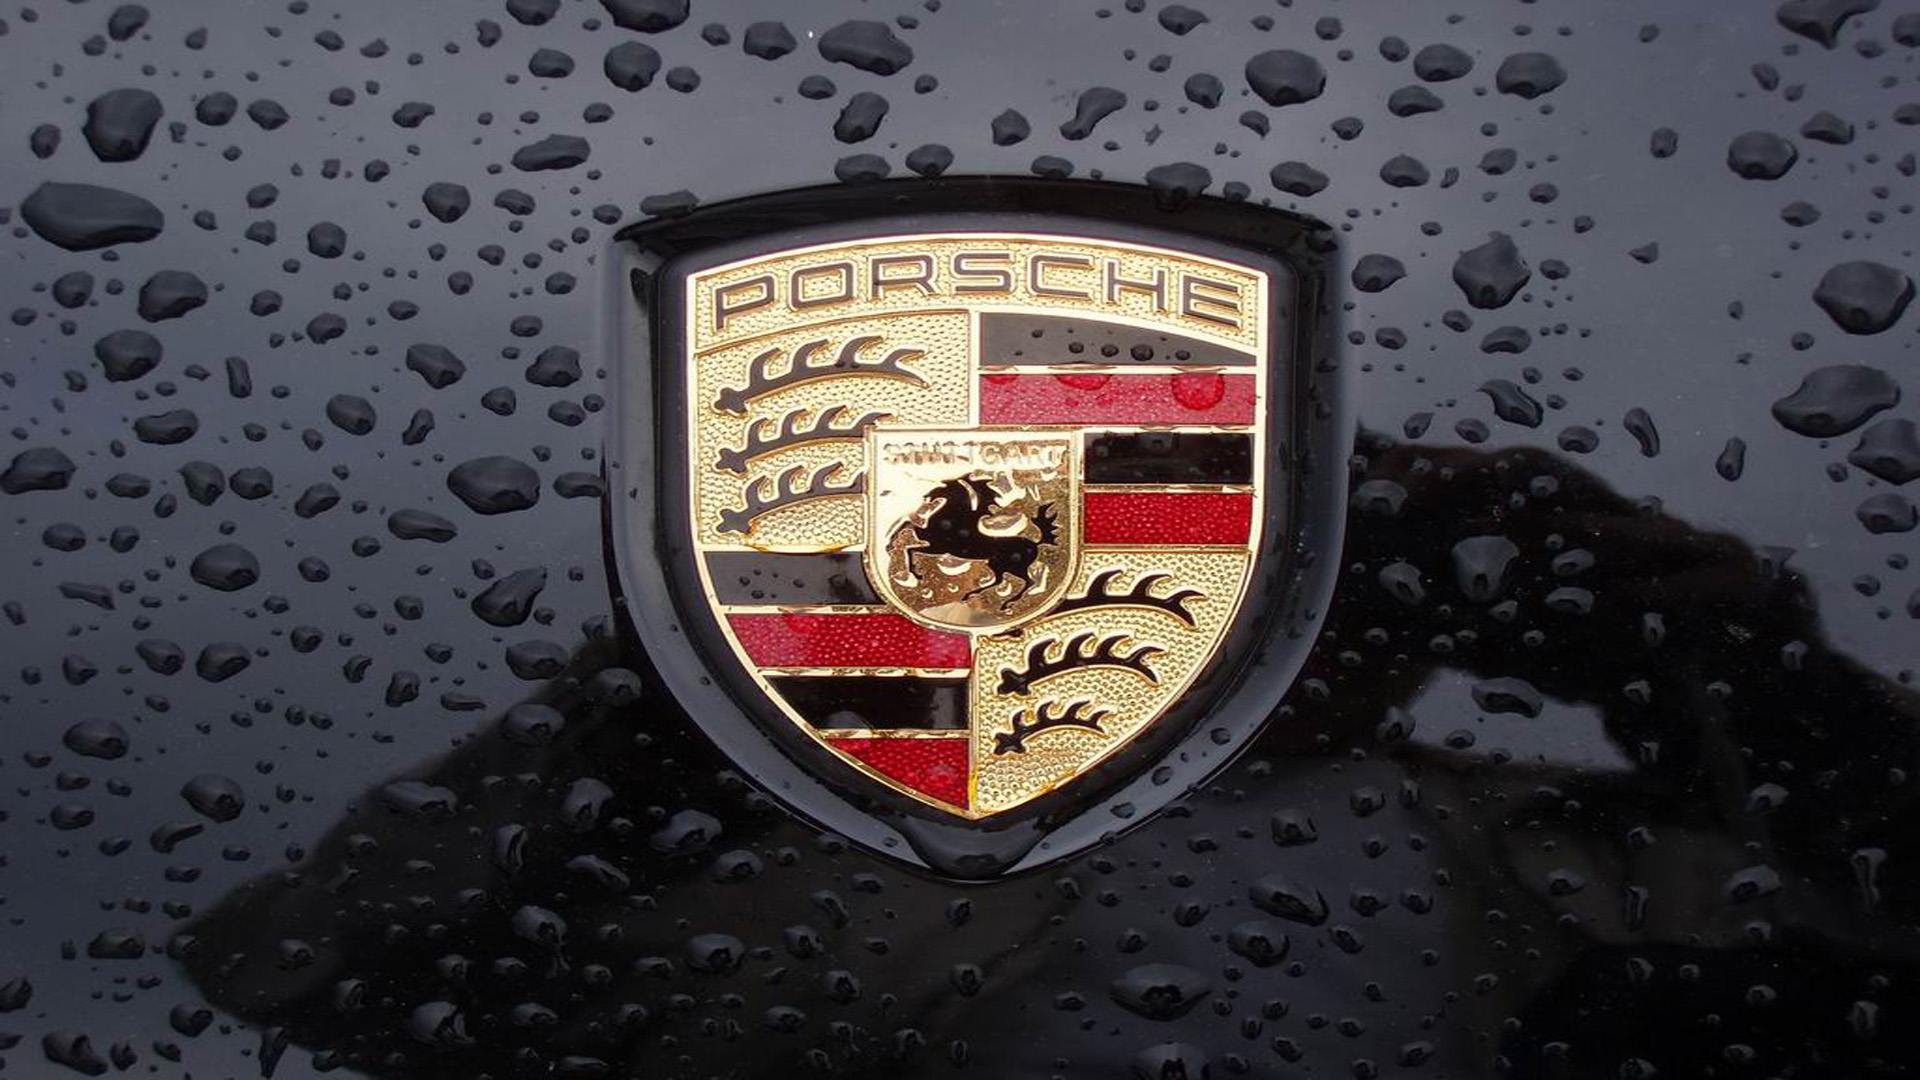 porsche logo full hd wallpaper 1920x1080 - Porsche Logo Wallpaper Iphone